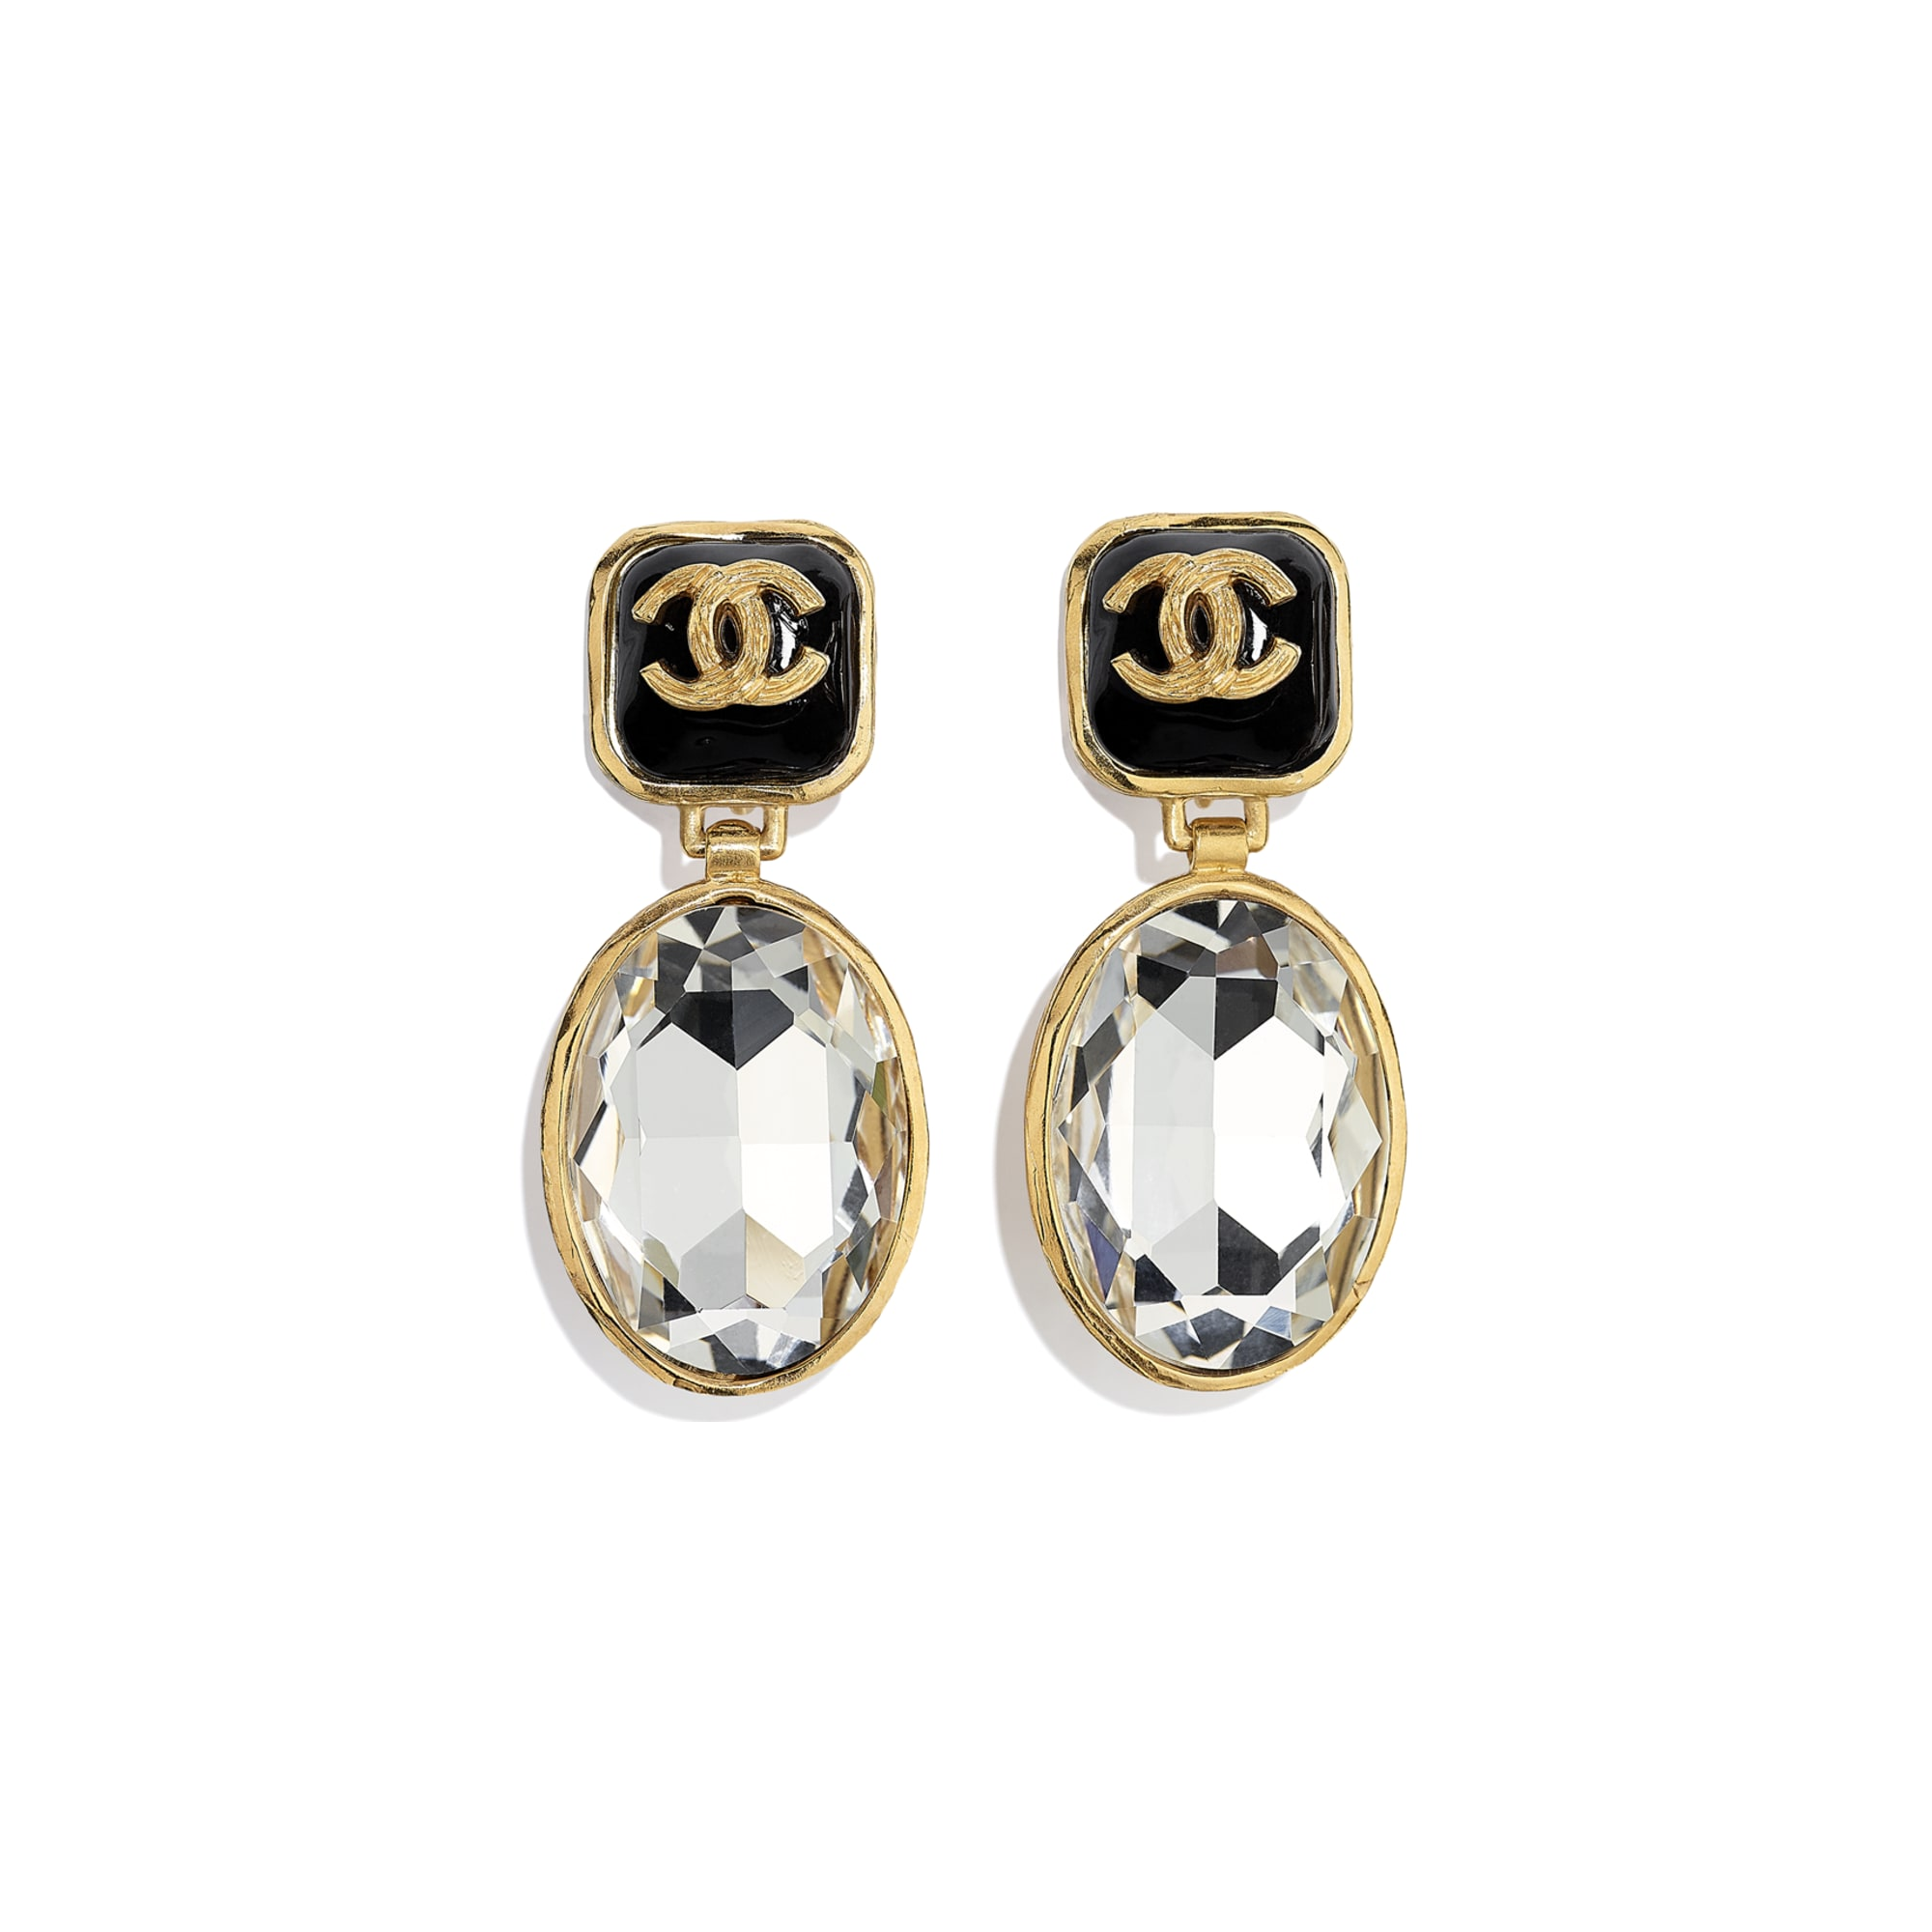 Clip-On Earrings - Gold, Crystal & Black - Metal, Diamantés & Resin - CHANEL - Default view - see standard sized version